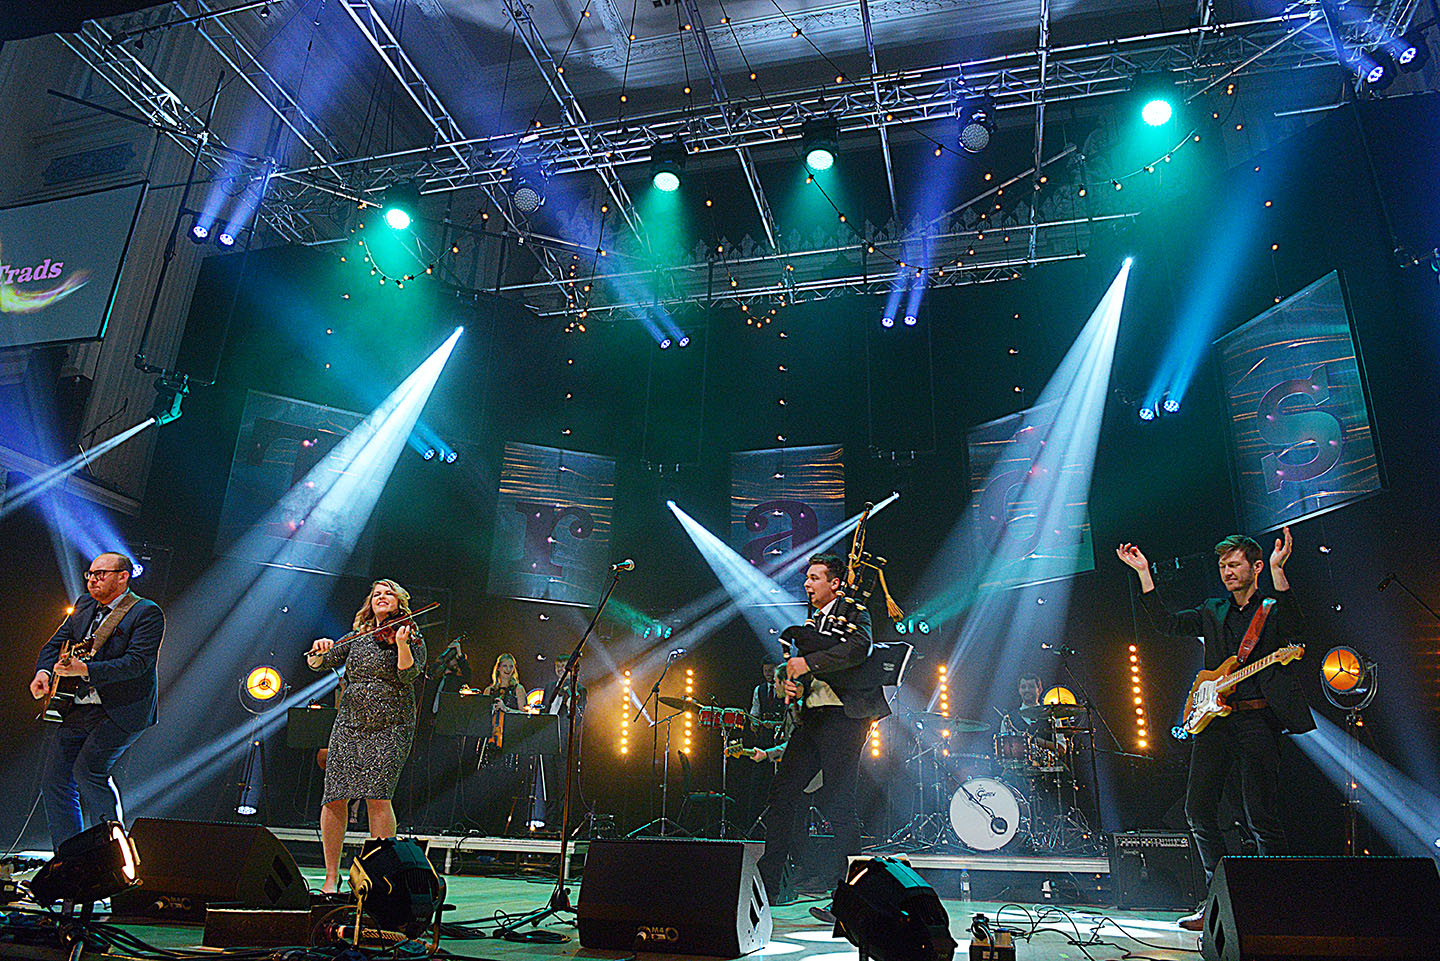 Trad Music Awards coming to Paisley for the first time